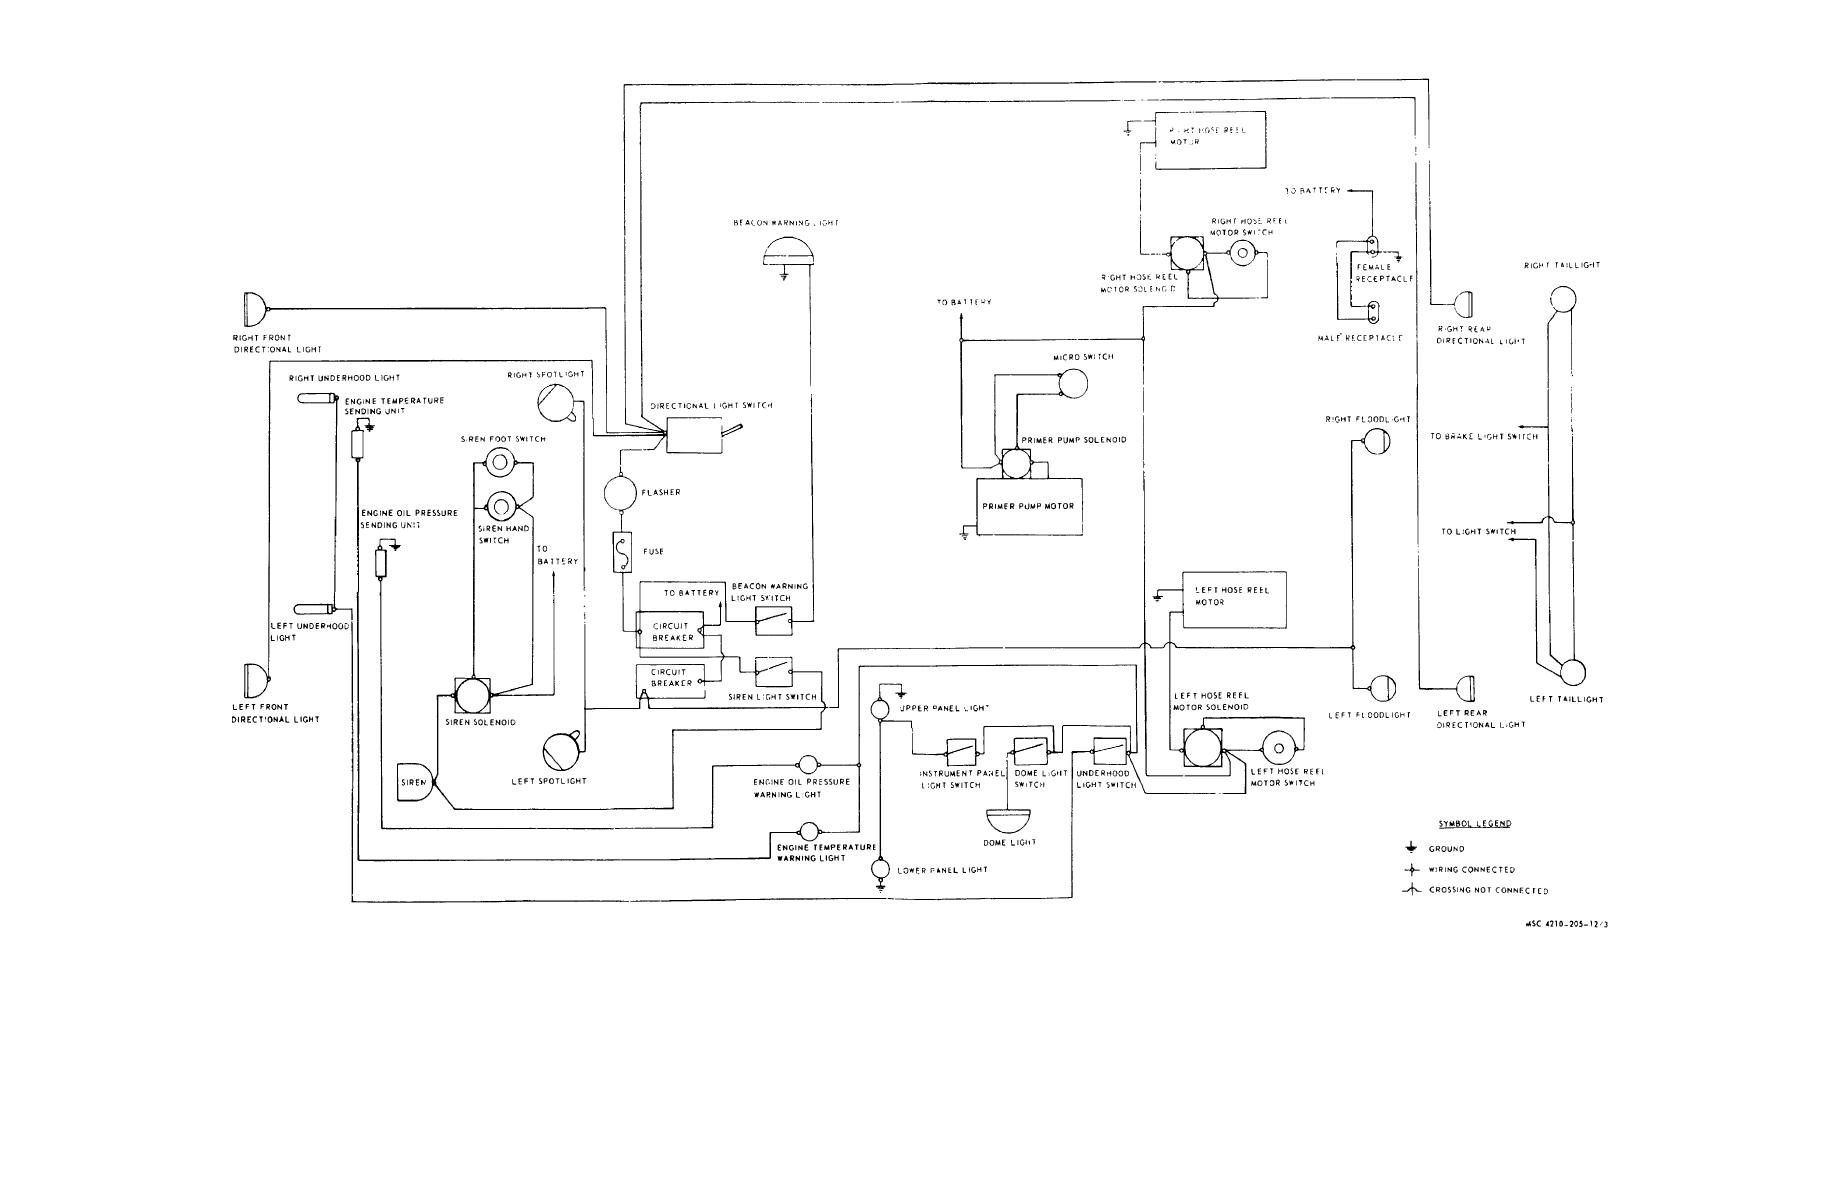 Fire Pump Wiring Diagram Mastering Diesel Schematic Free Engine Image For User Manual Download Motor